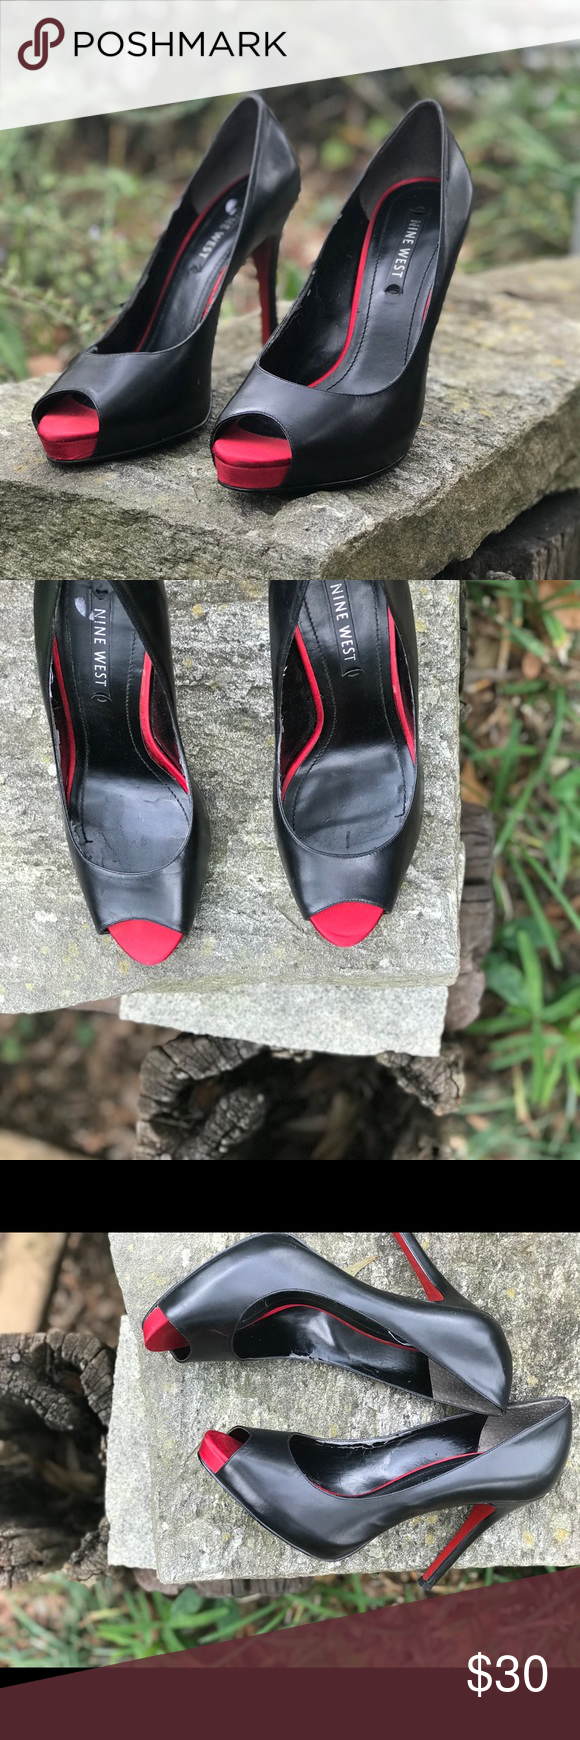 d29d316e7879 NINE WEST peep toe pumps with RED SOLE These ain t expensive red bottoms